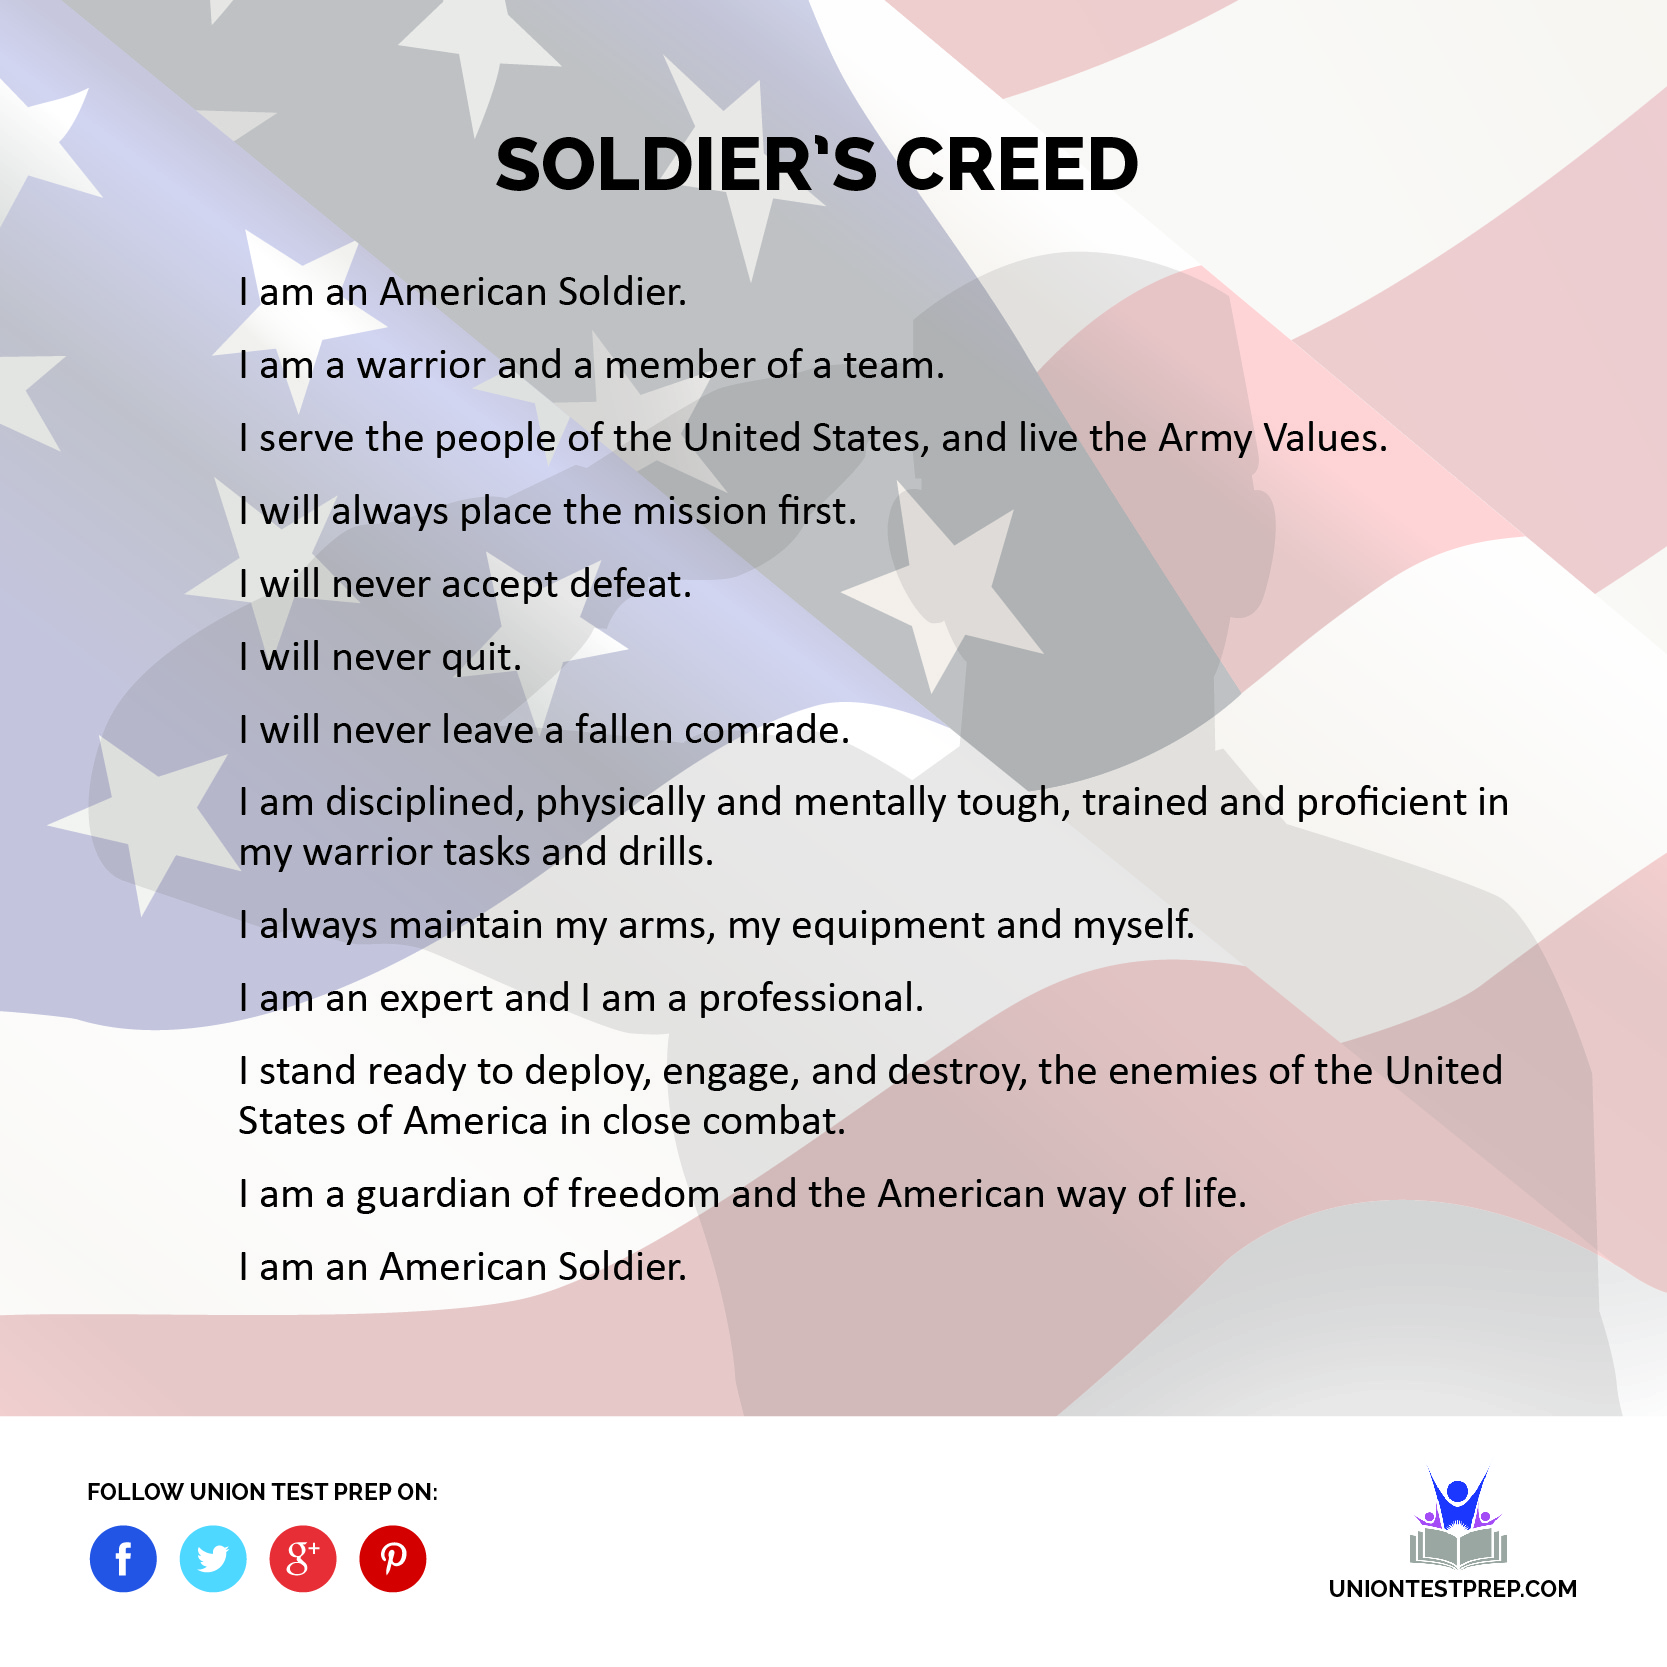 soldiers creed Currently, most of the military shirts available are not creative enough and are uninspiring most of those t-shirts are made over seas in foreign countries, primarily the middle east and southeast asia.